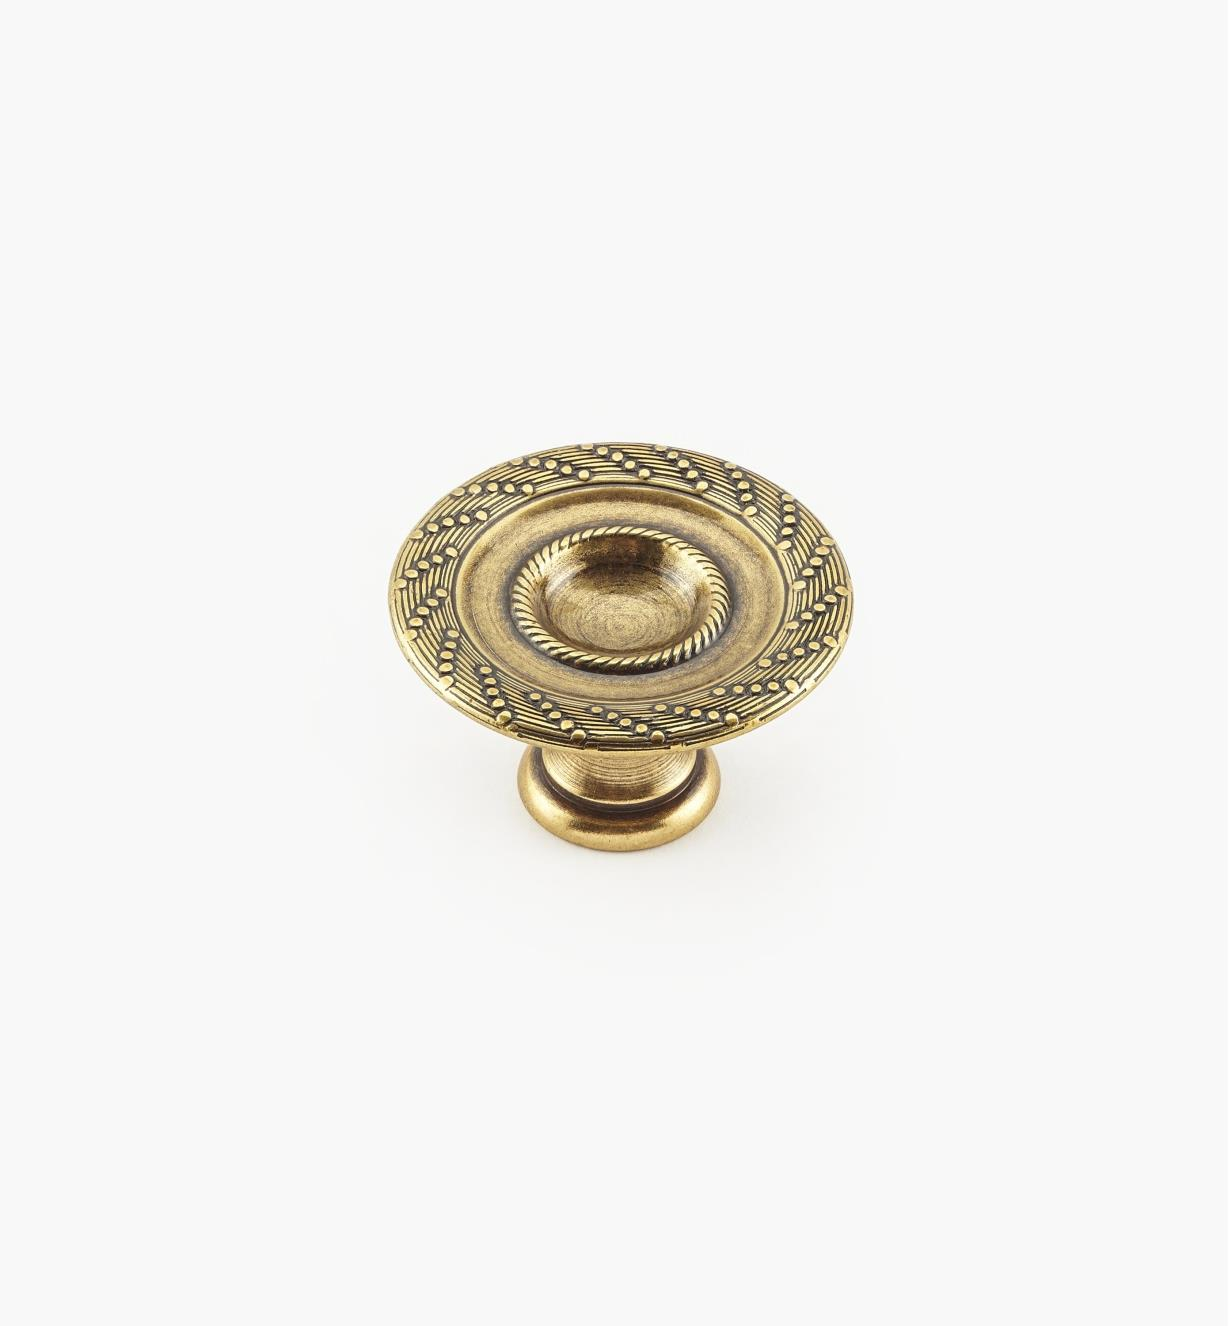 01A9135 - Bouton Empire, fini bronze bruni, 35 mm x 20 mm